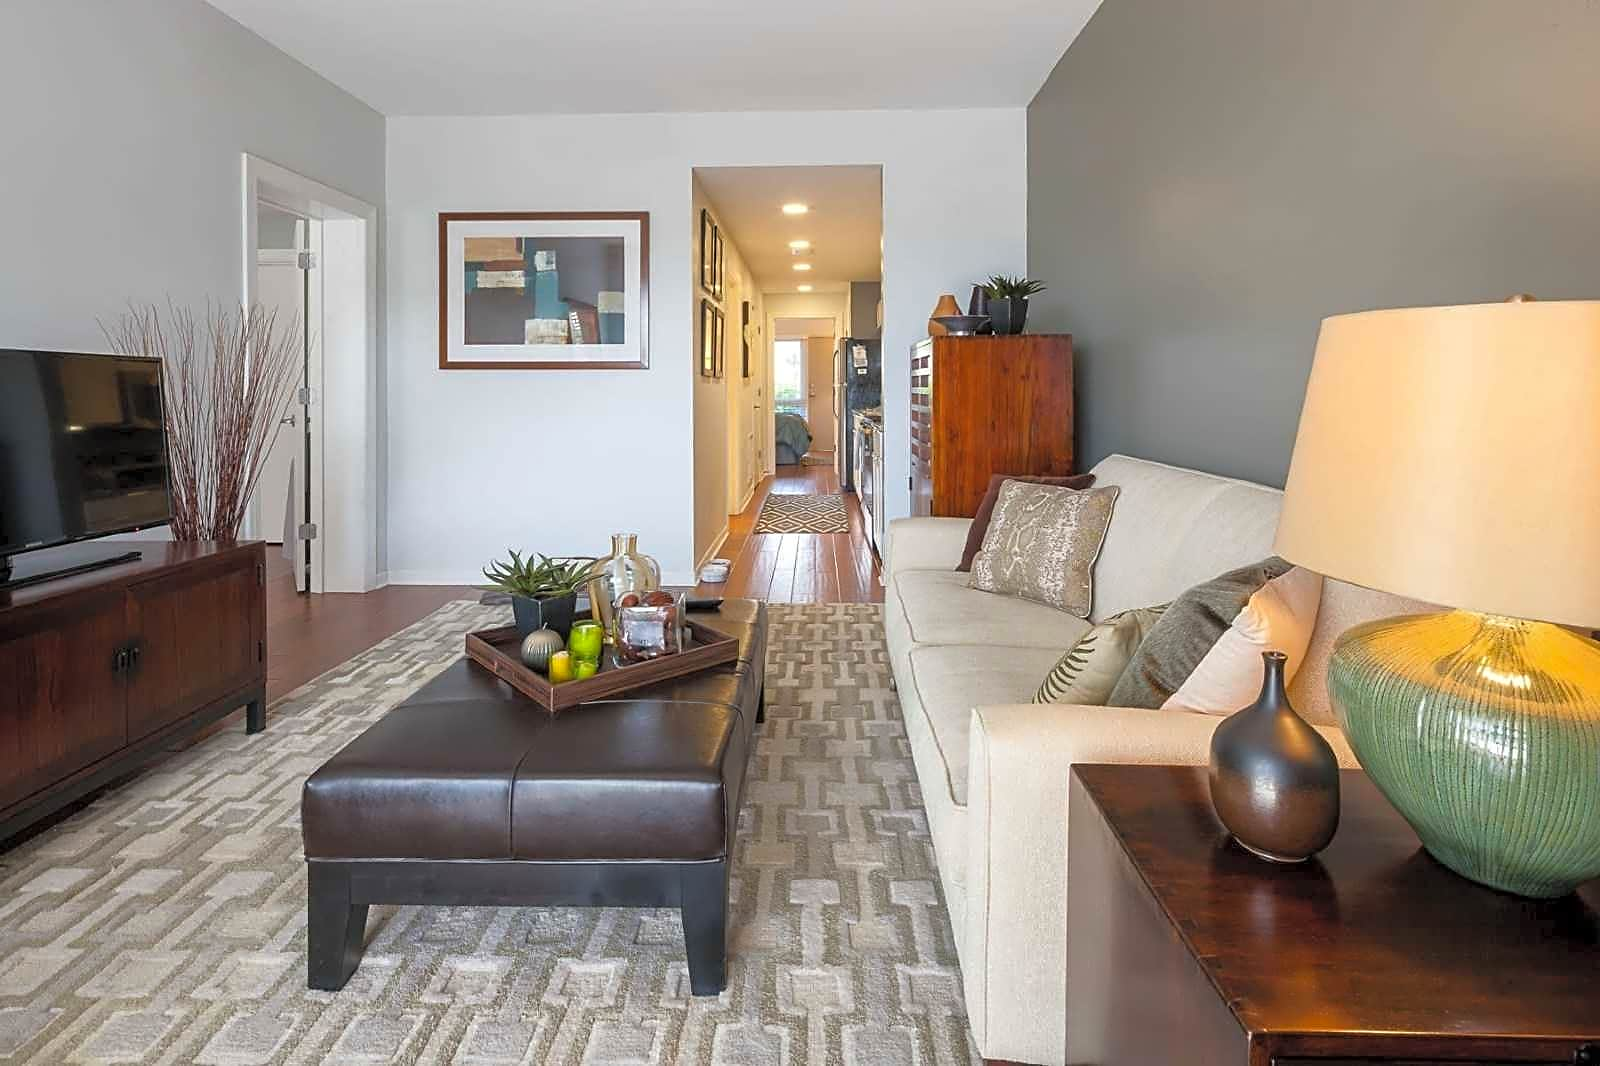 Apartments Near WFU Hilltop House Downtown for Wake Forest University Students in Winston Salem, NC